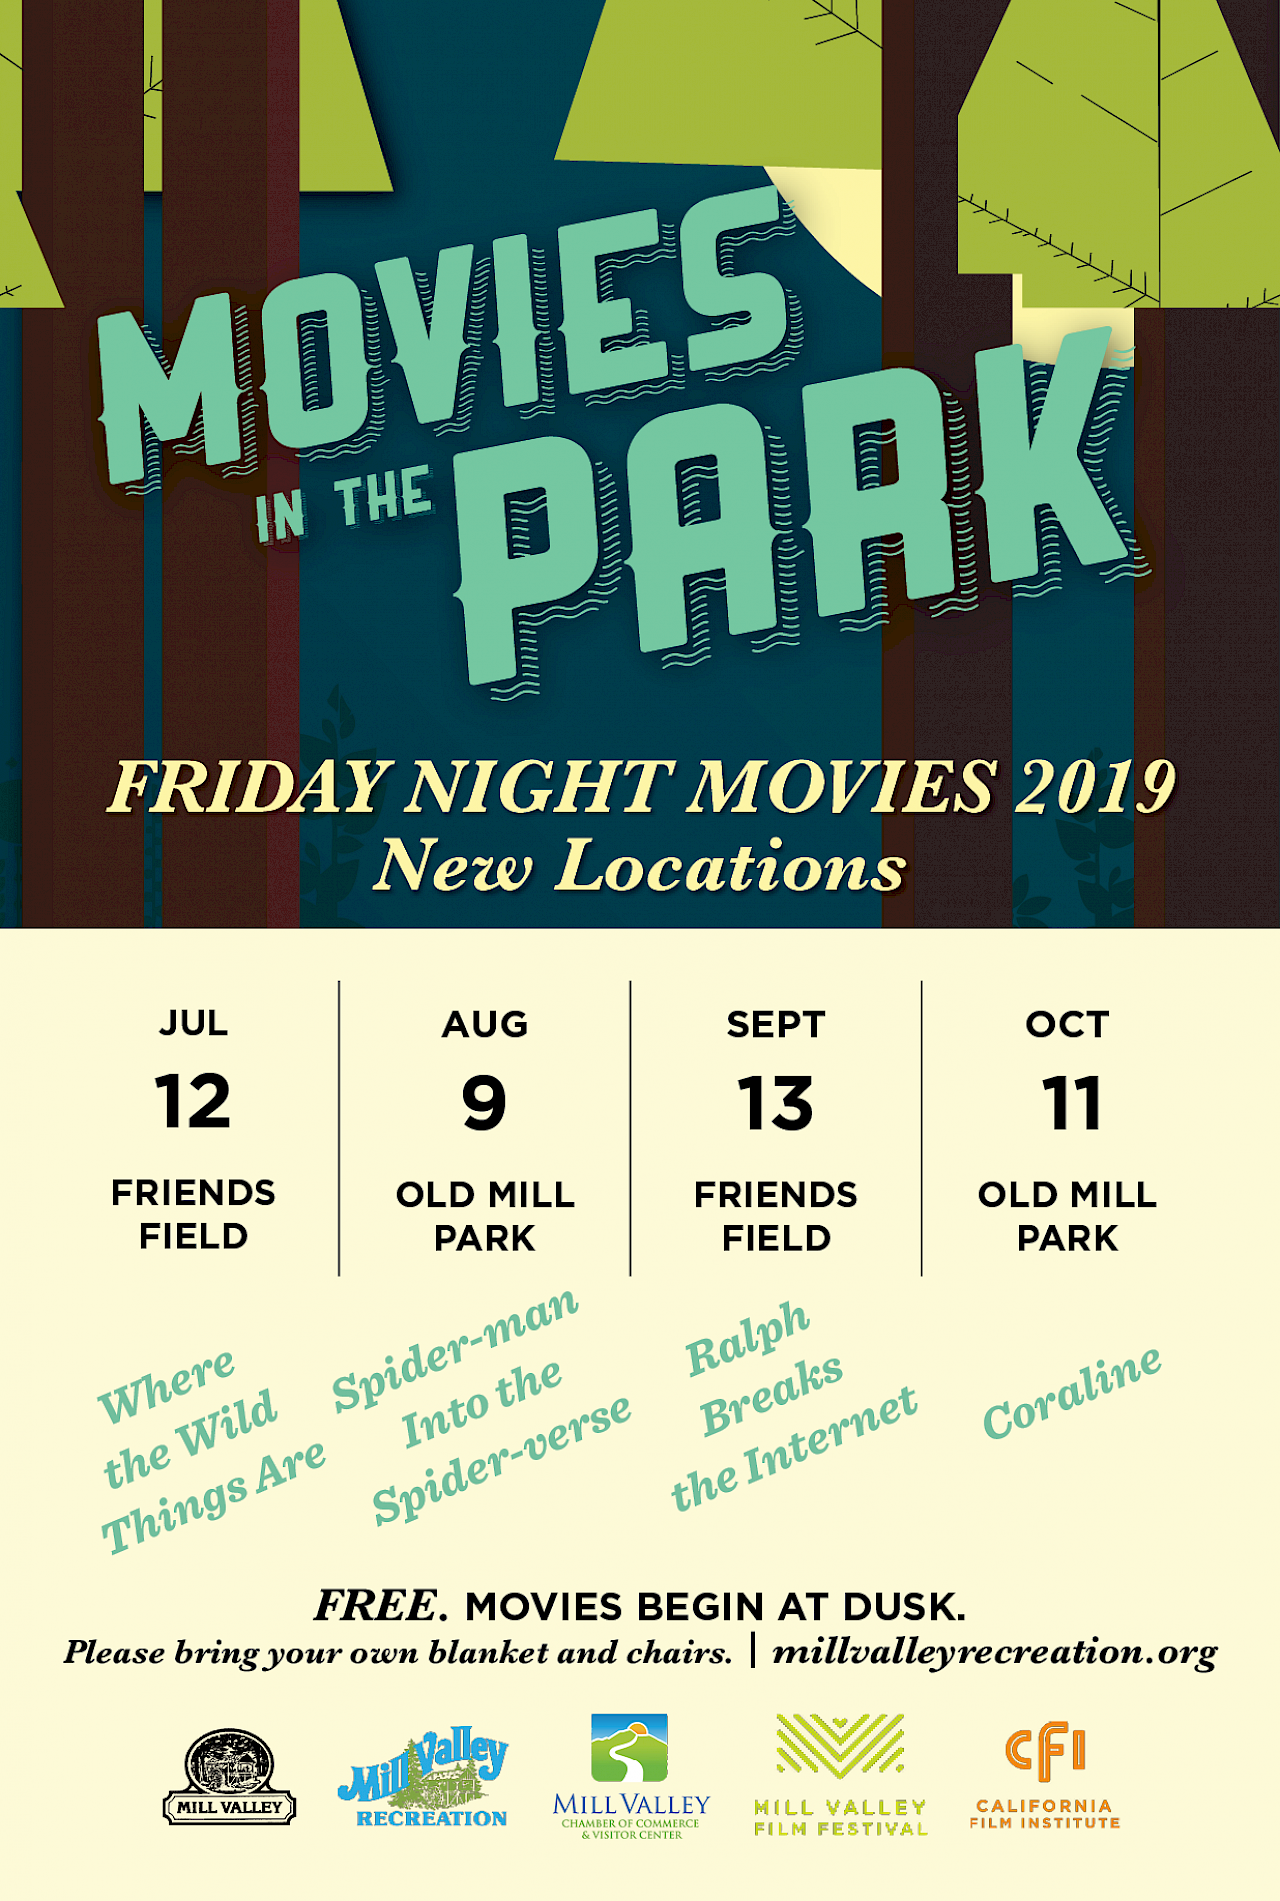 Movies In The Park Coraline At Old Mill Park October 2019 Marin Convention Visitors Bureau